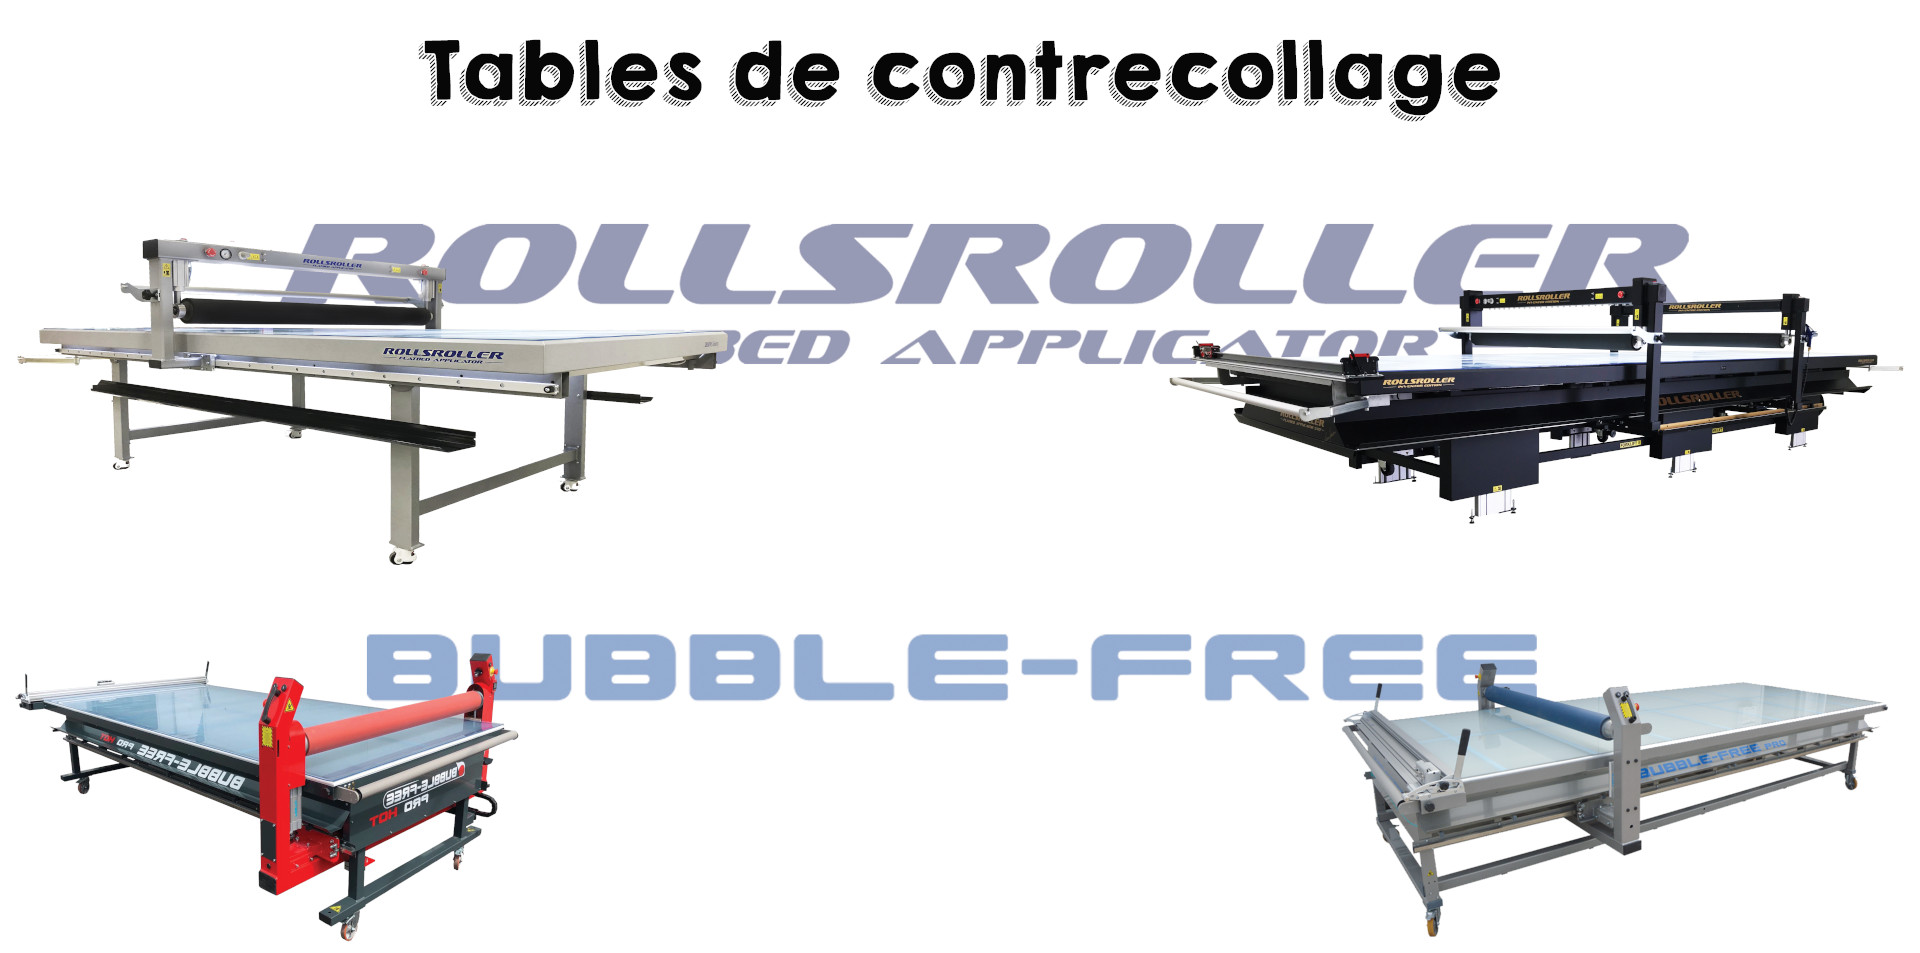 Tables de contrecollage - Club Groupe